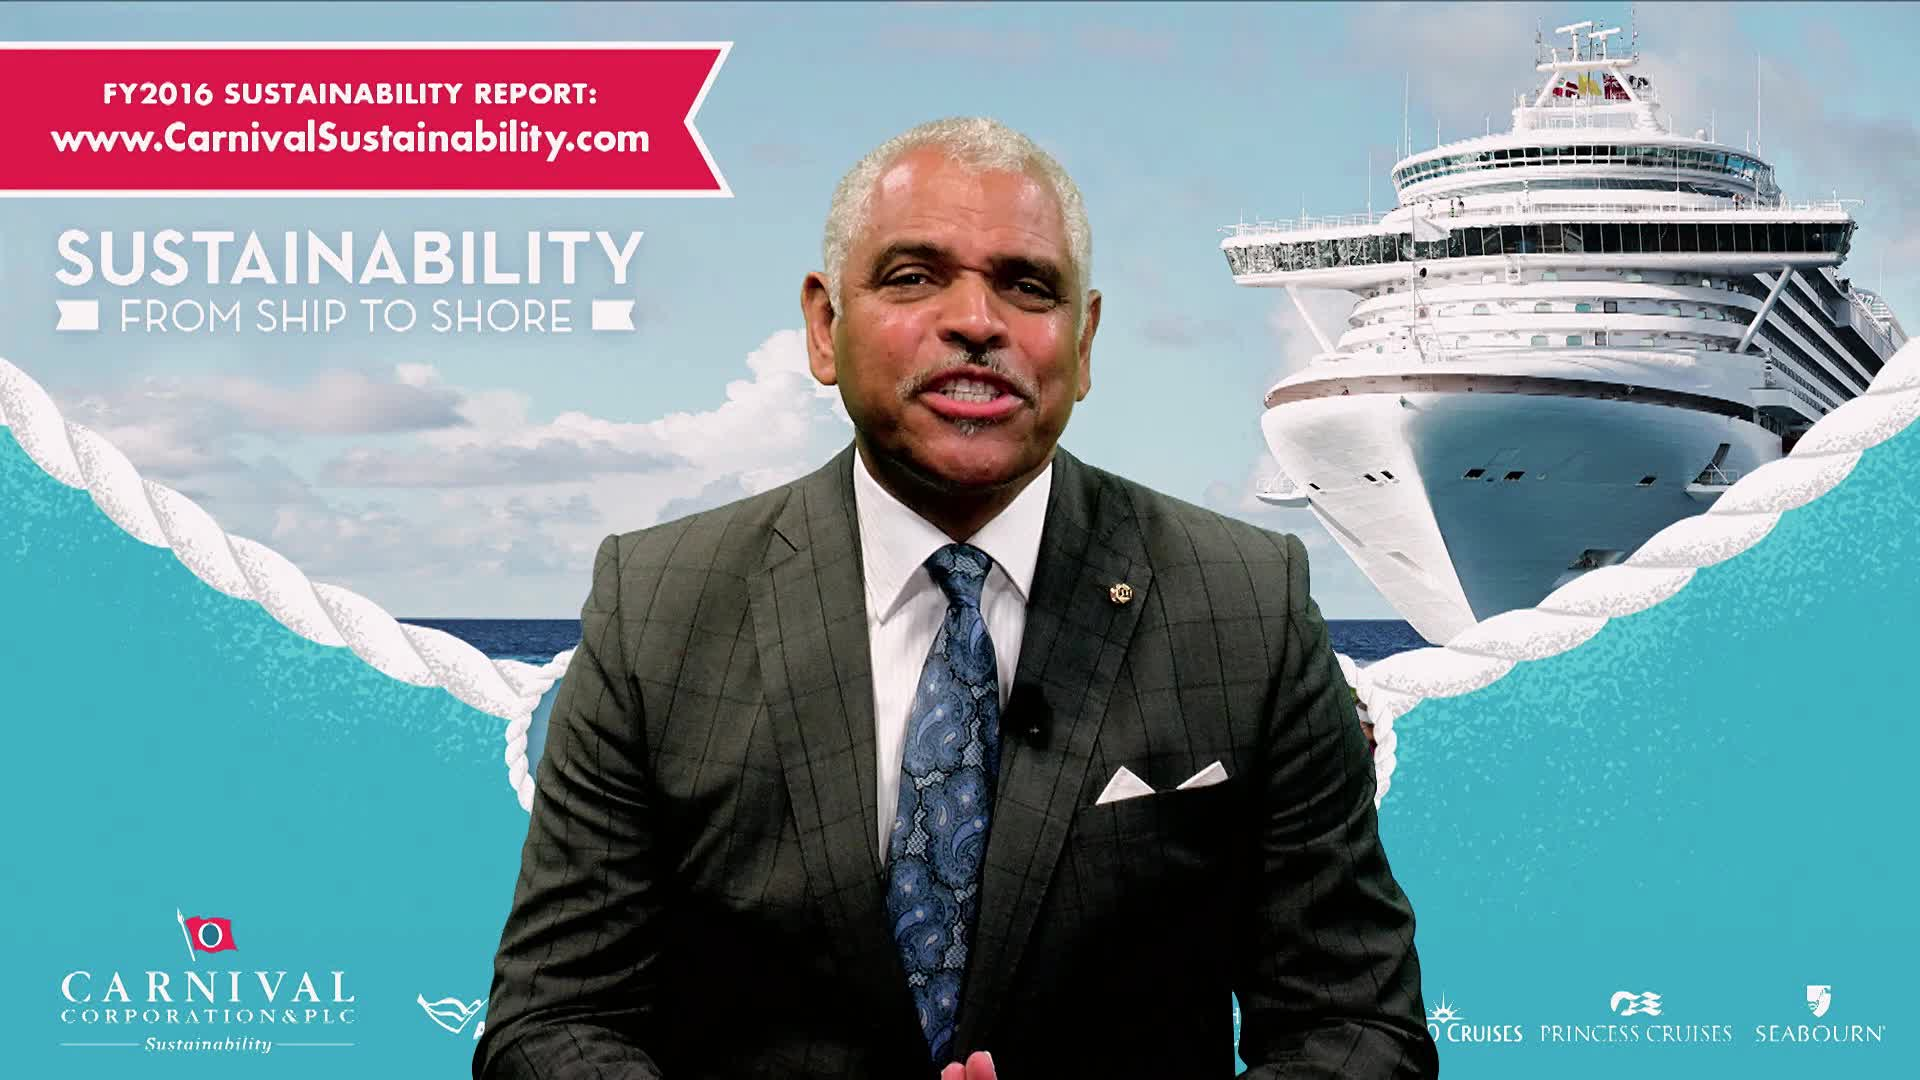 Carnival Corporation's president and CEO Arnold Donald invites readers to join the cruise company on its sustainability journey through a welcome video that highlights key elements of the company's commitment to sustainability.